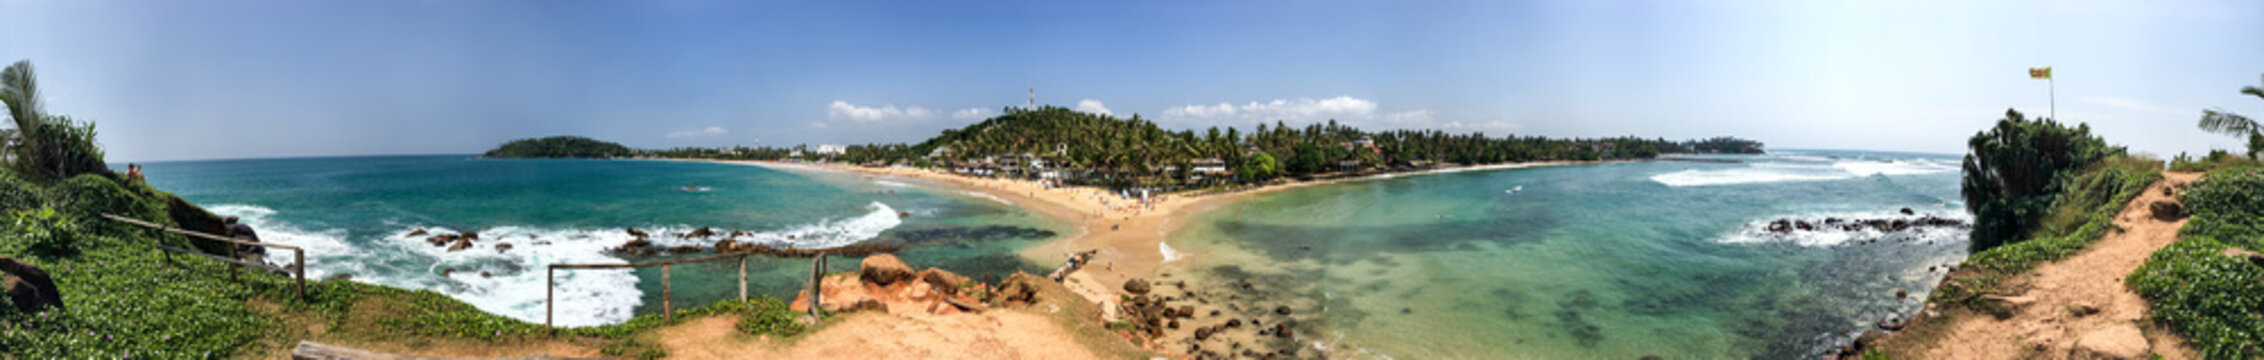 360 degrees panorama, beach in Mirissa, Sri Lanka